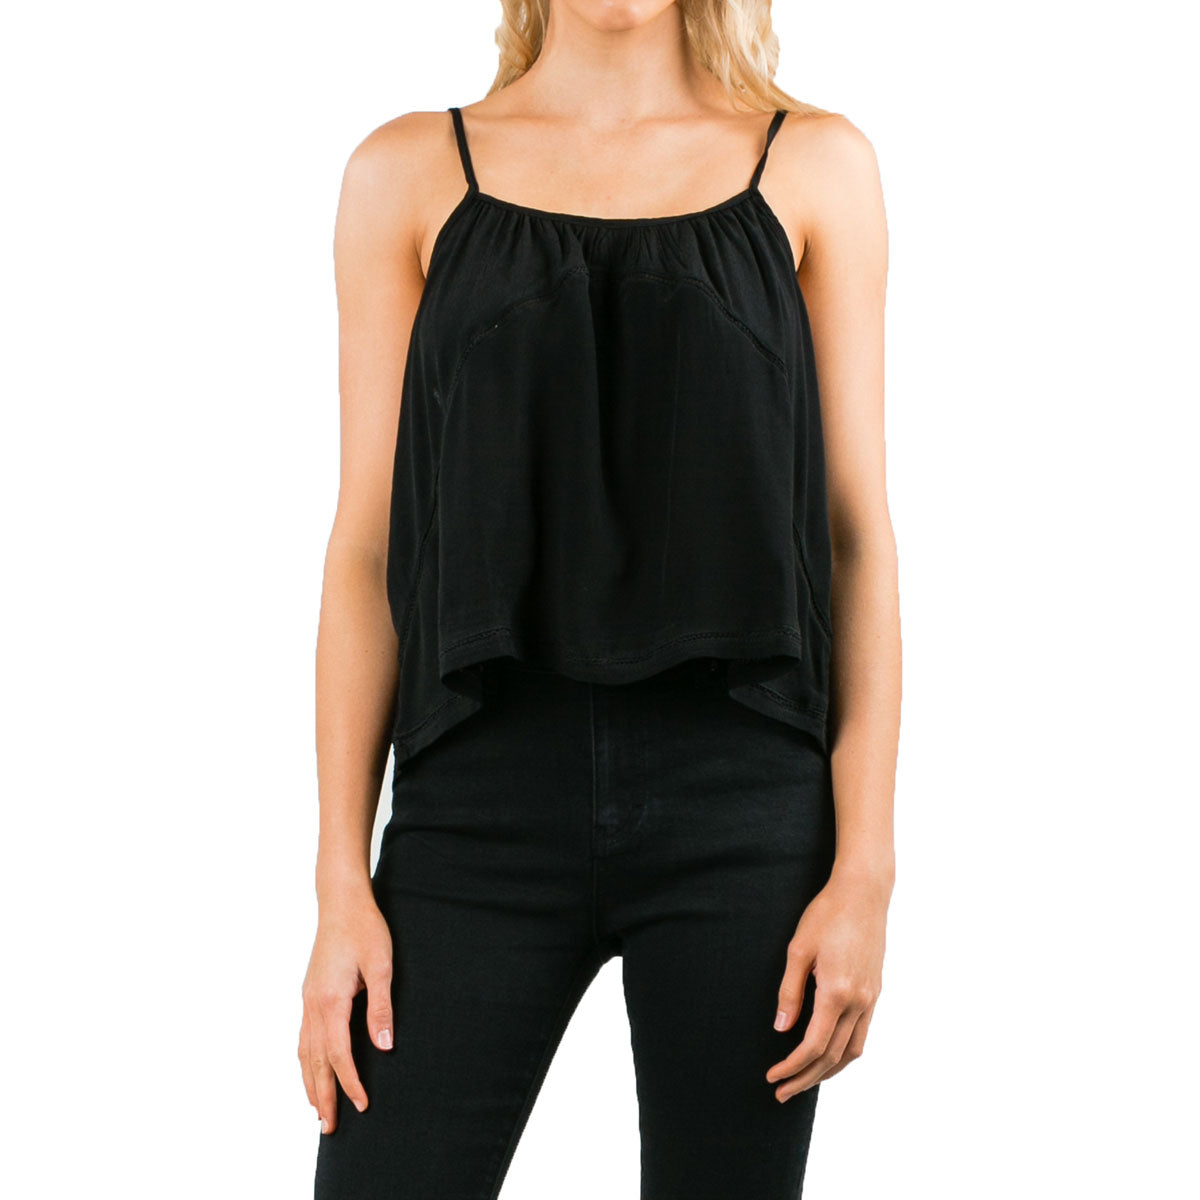 Rusty Women's Rider Cami Top Shirts-WSL0528-BLK